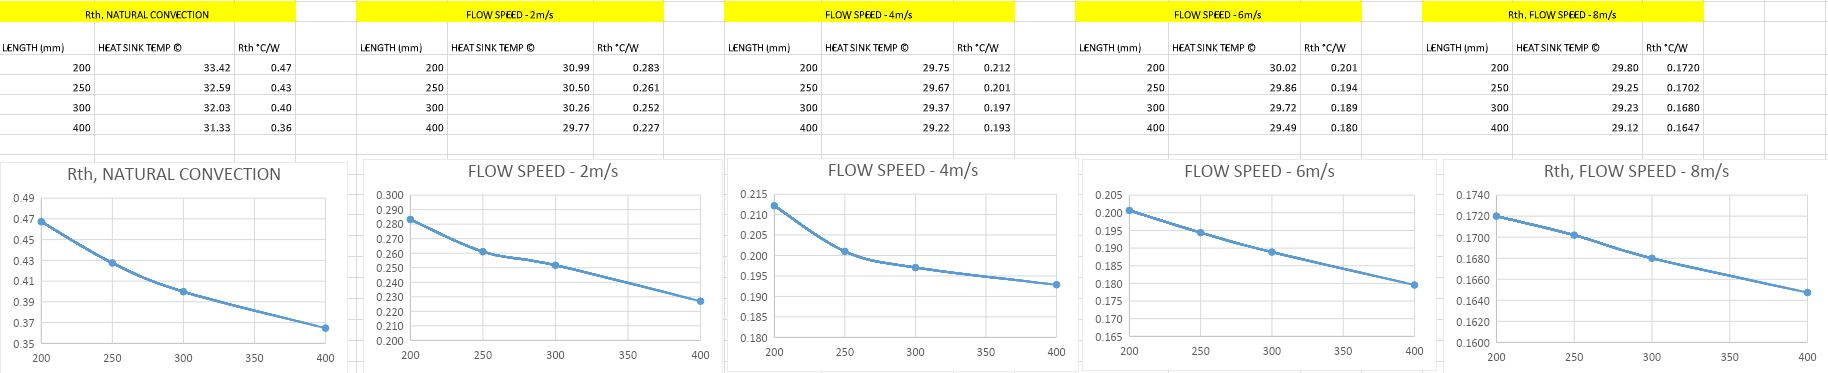 Variation of Rth Value with Flow Speed.